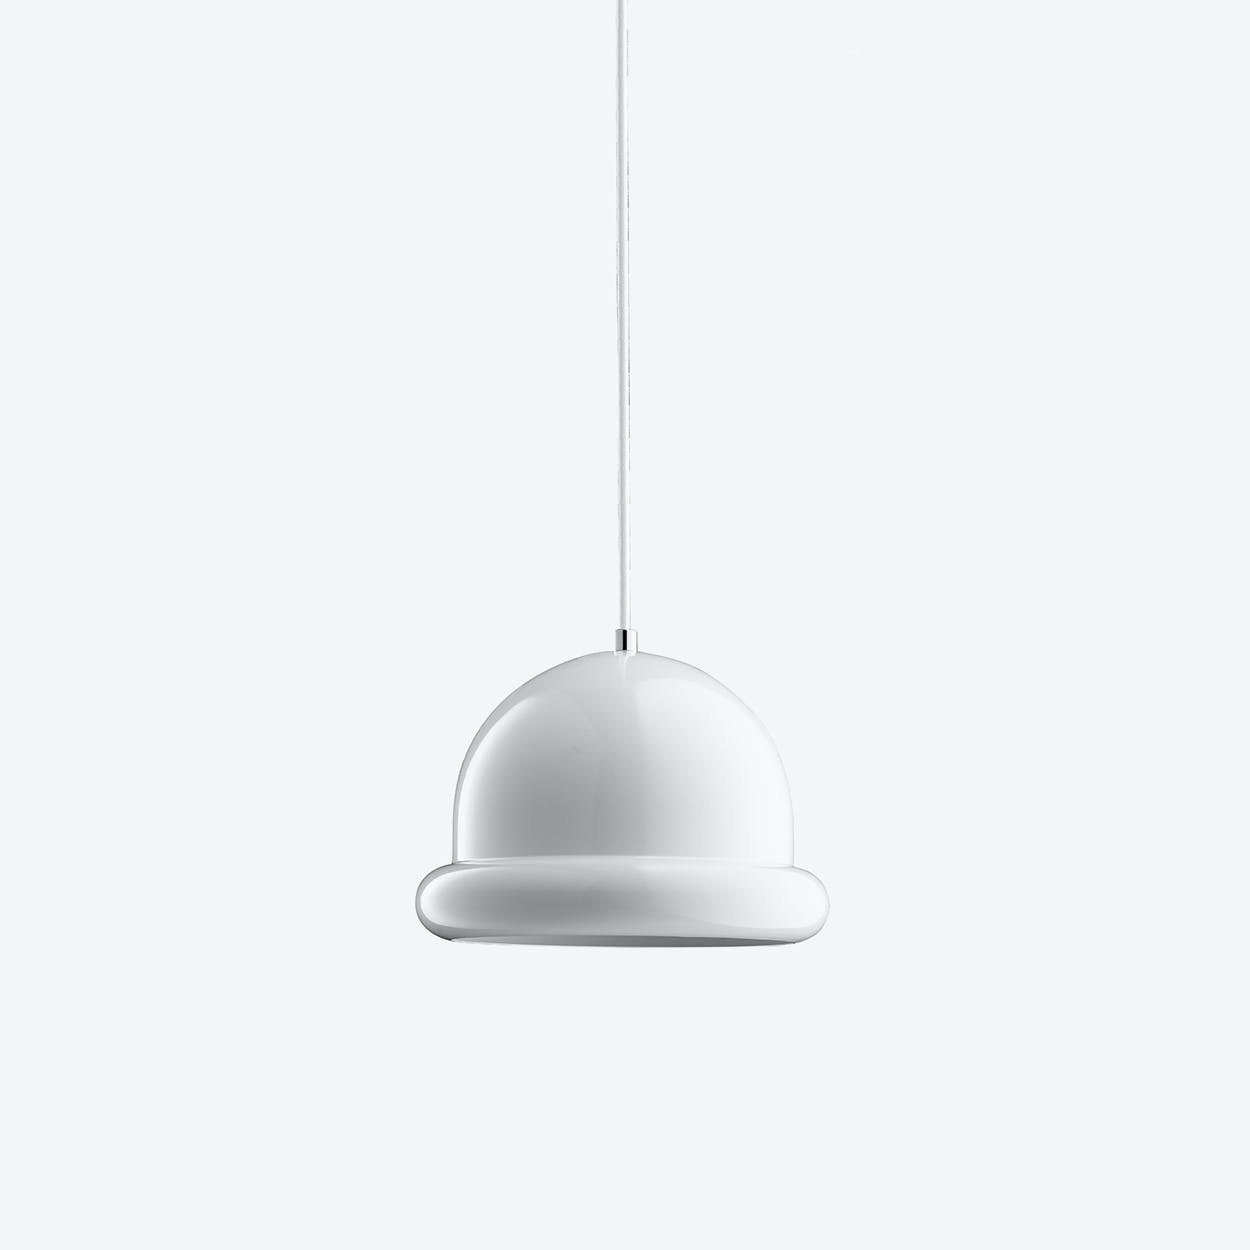 Hattrick Pendant Lamp in White